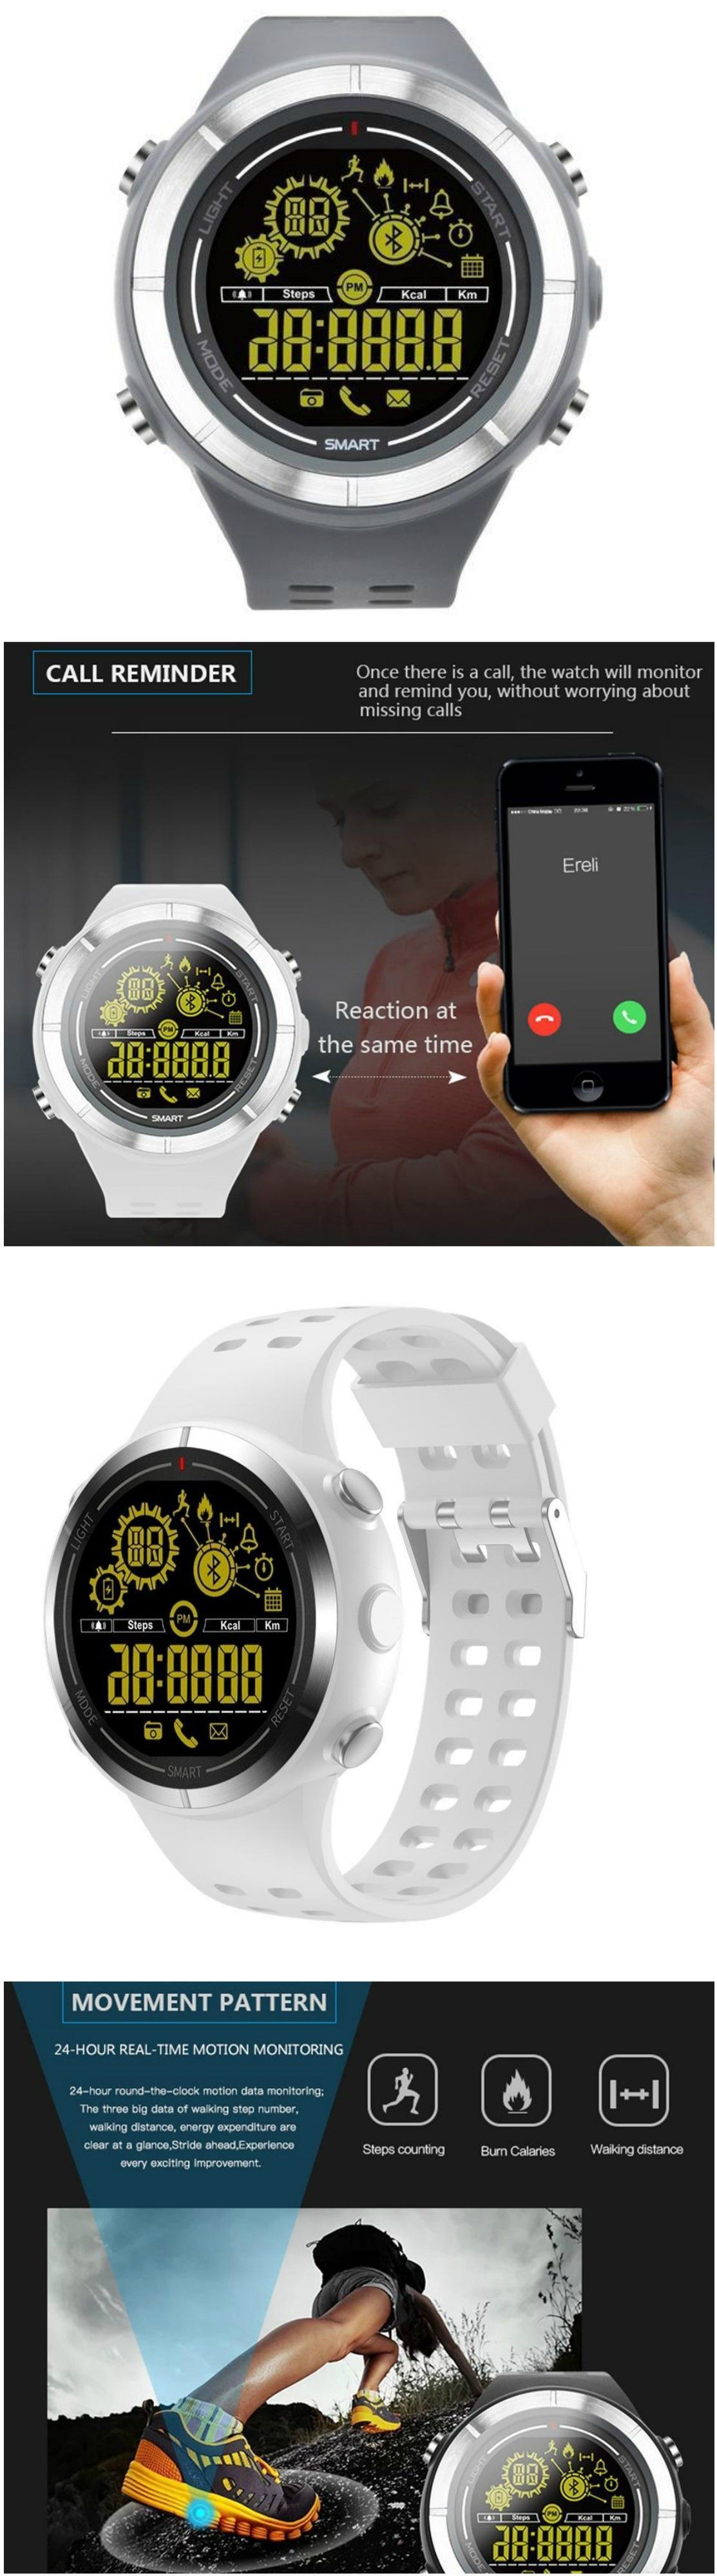 New Fitness Wristband Smart Band compatible with Android